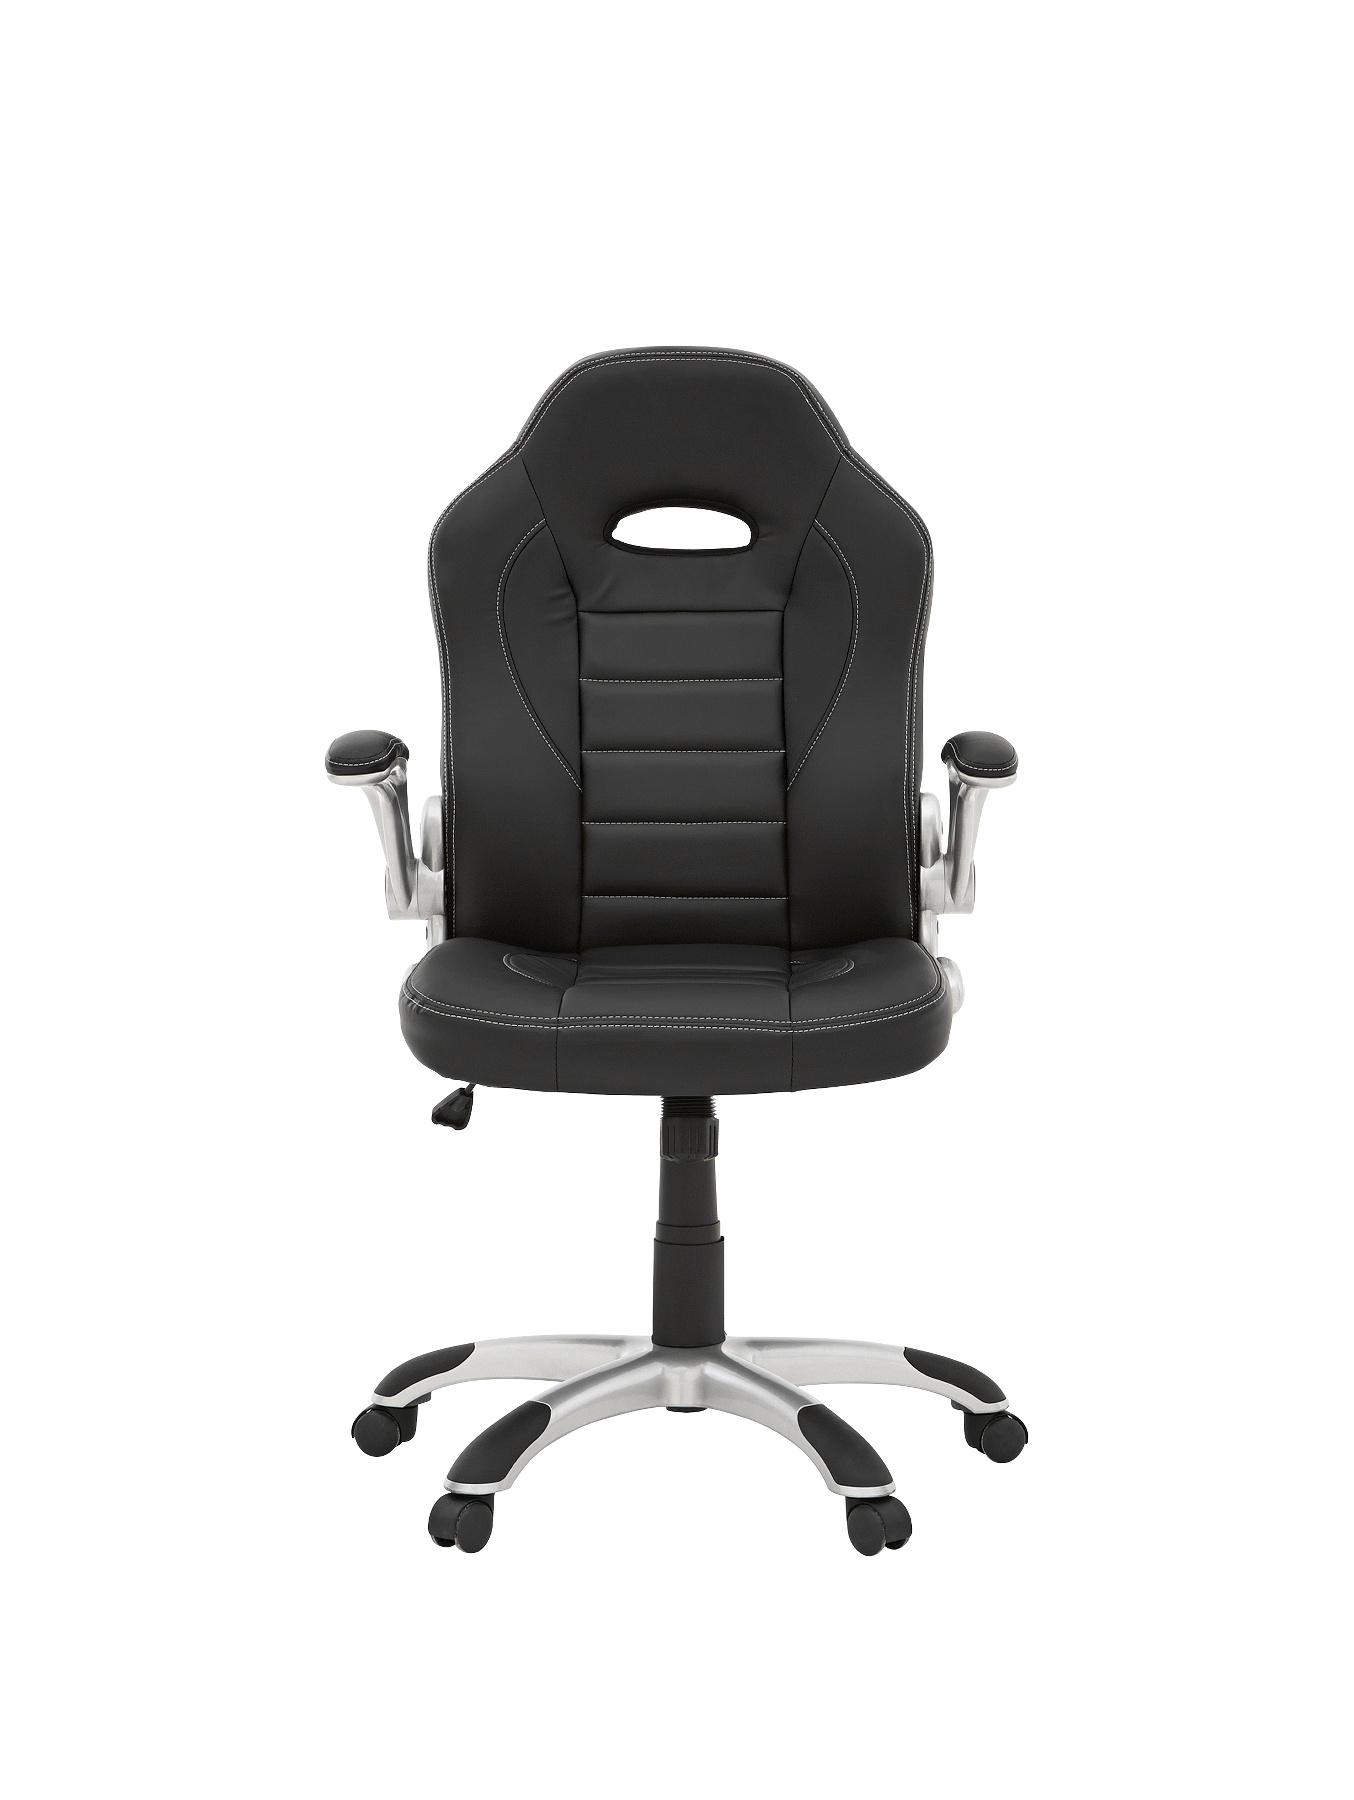 Alphason Hamilton Office Chair (Black)